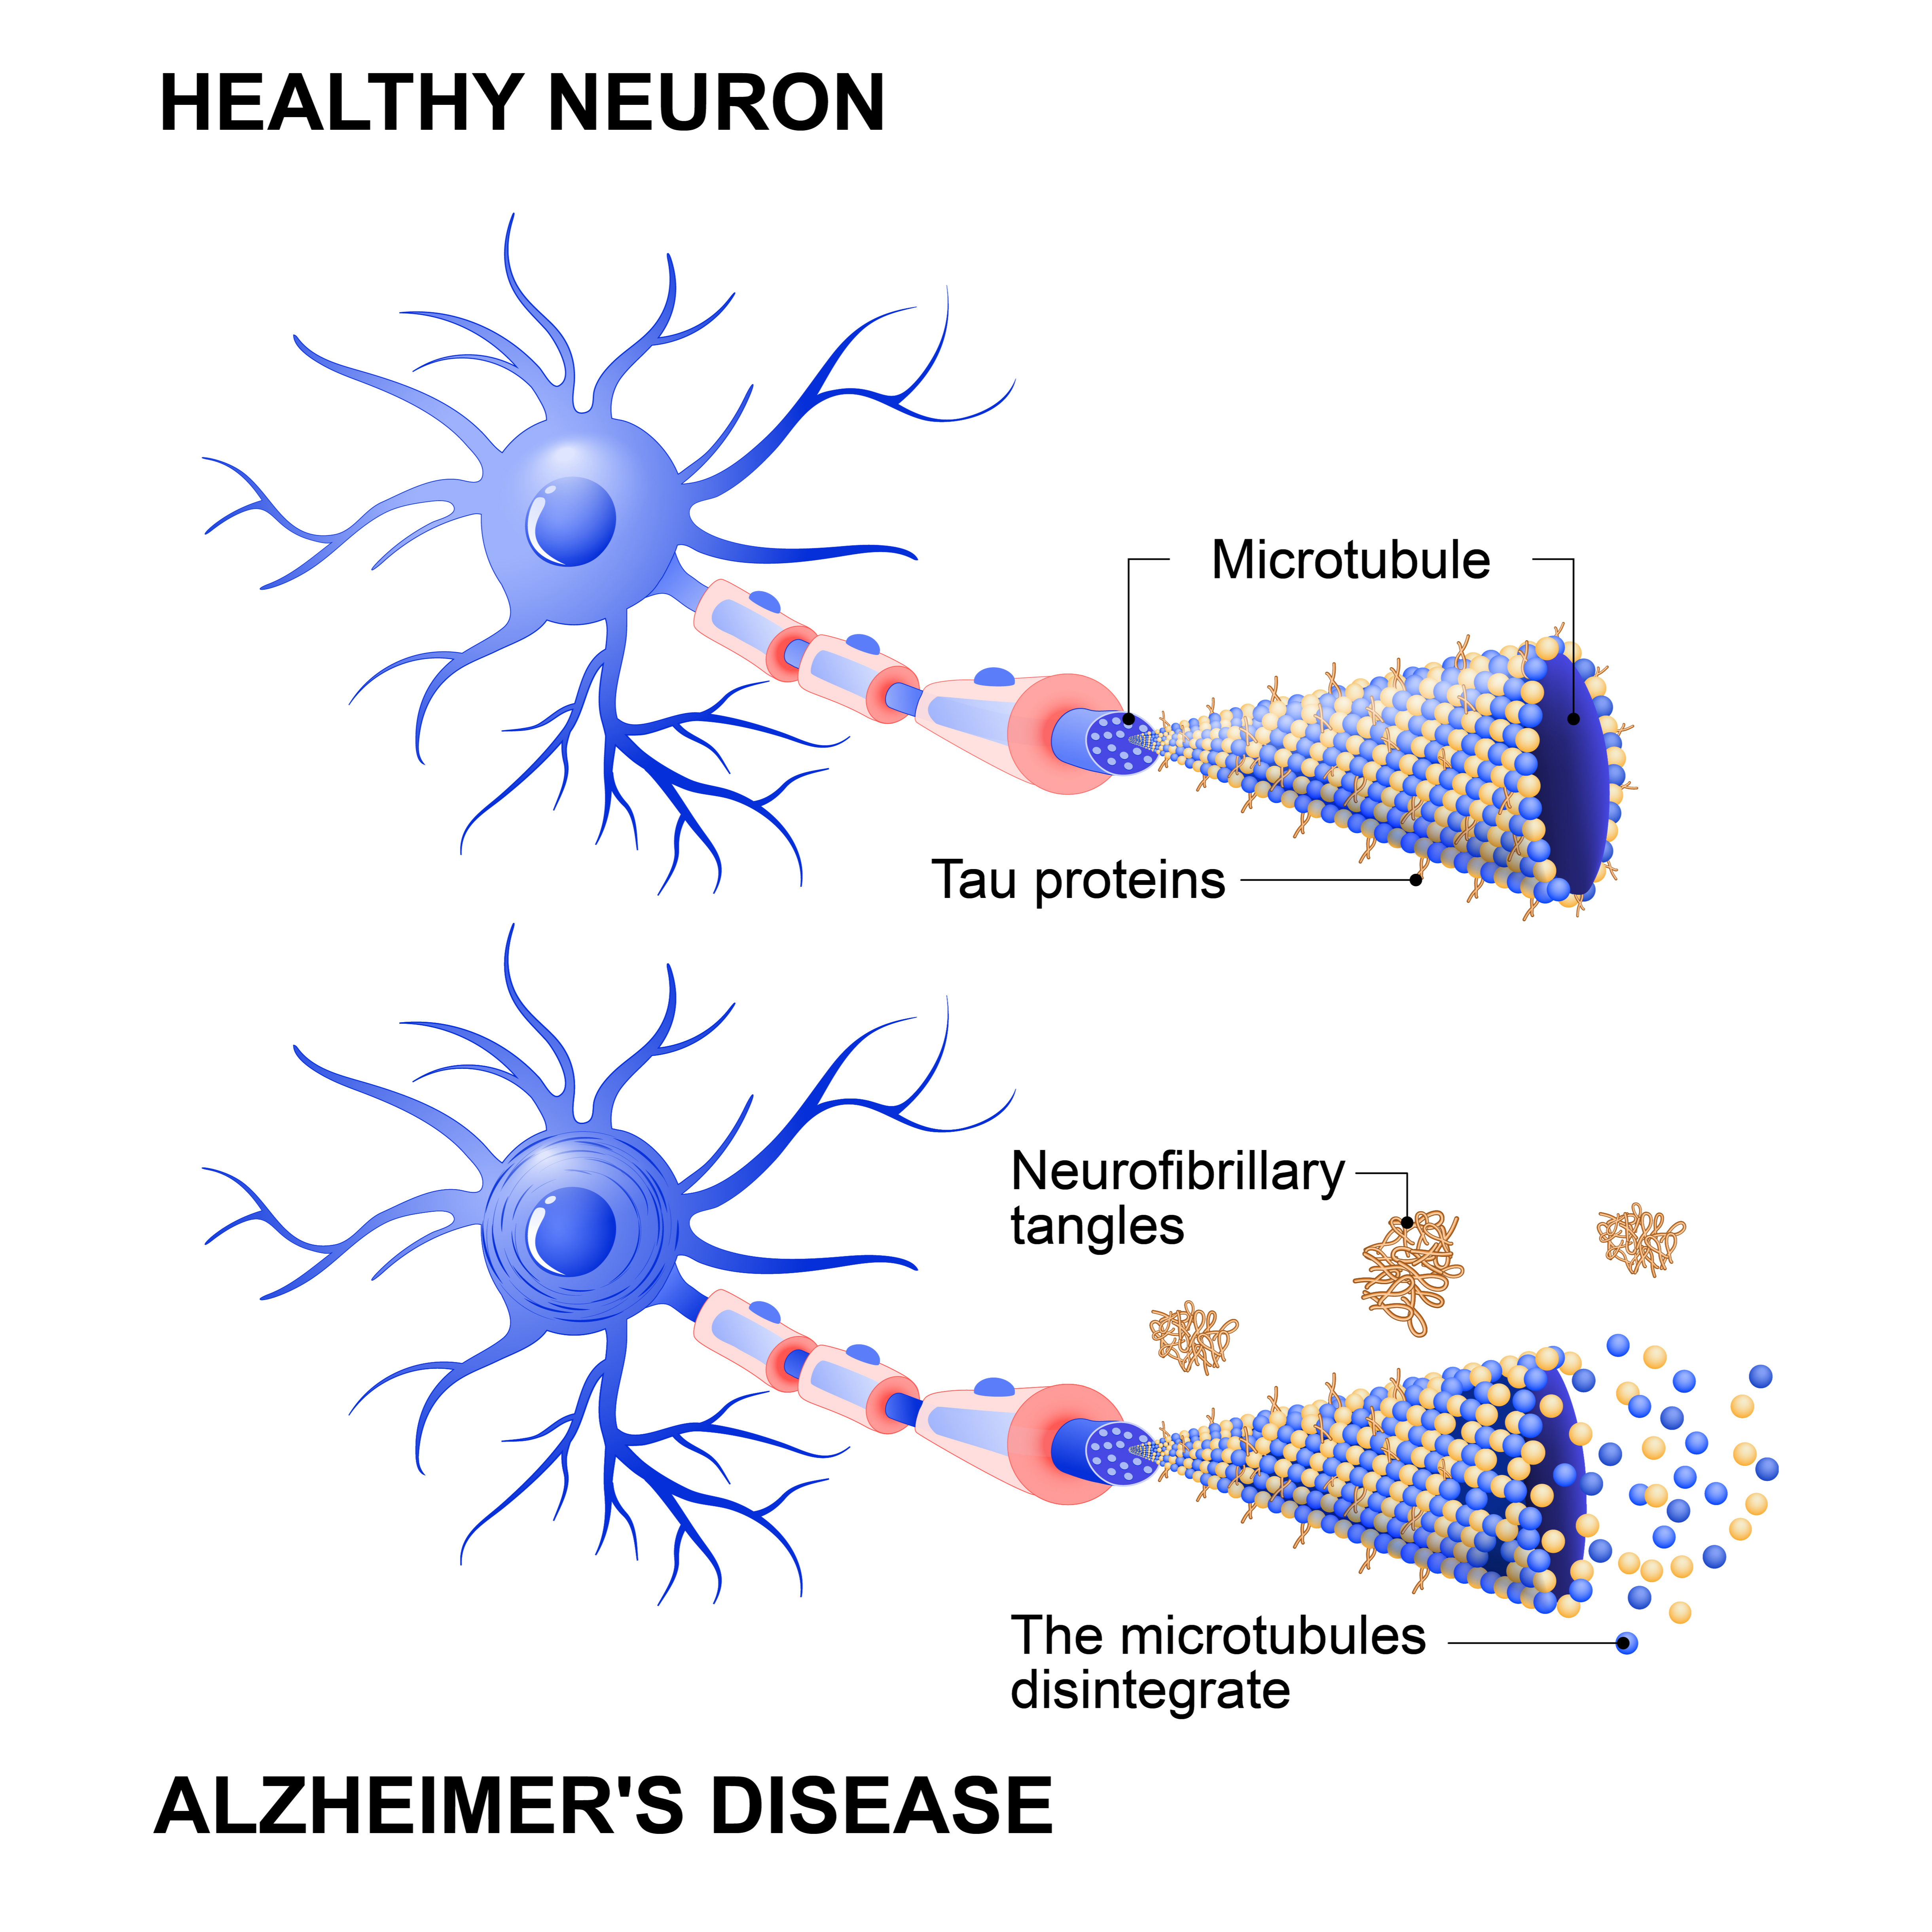 healthy neuron and